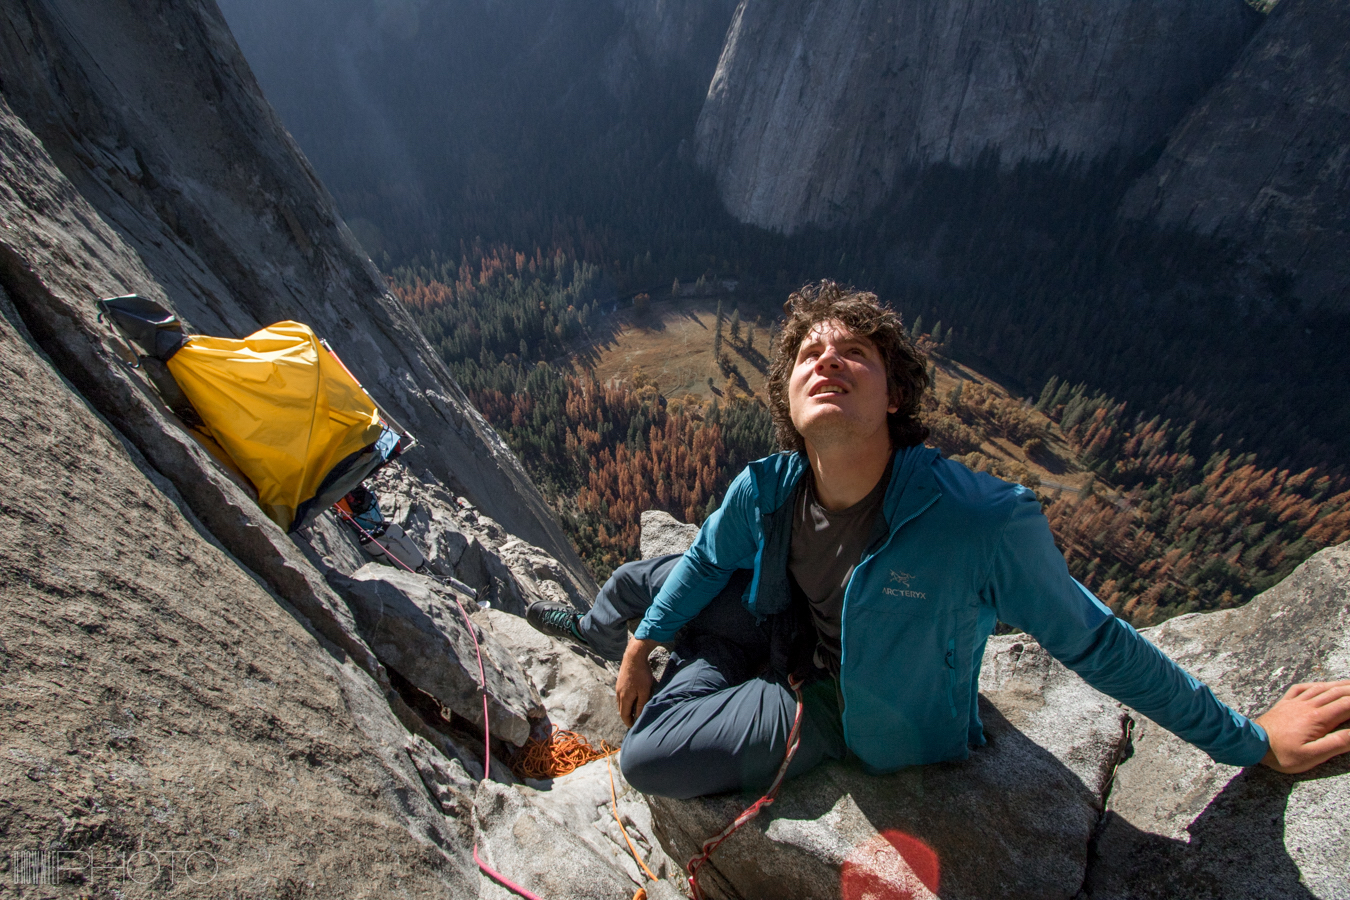 Marc-Andre Leclerc on a successful free ascent of El Capitan's Muir Wall (VI 5.13c 900m) with Brette Harrington and Alan Carney in 2015. [Photo] Bradford McArthur